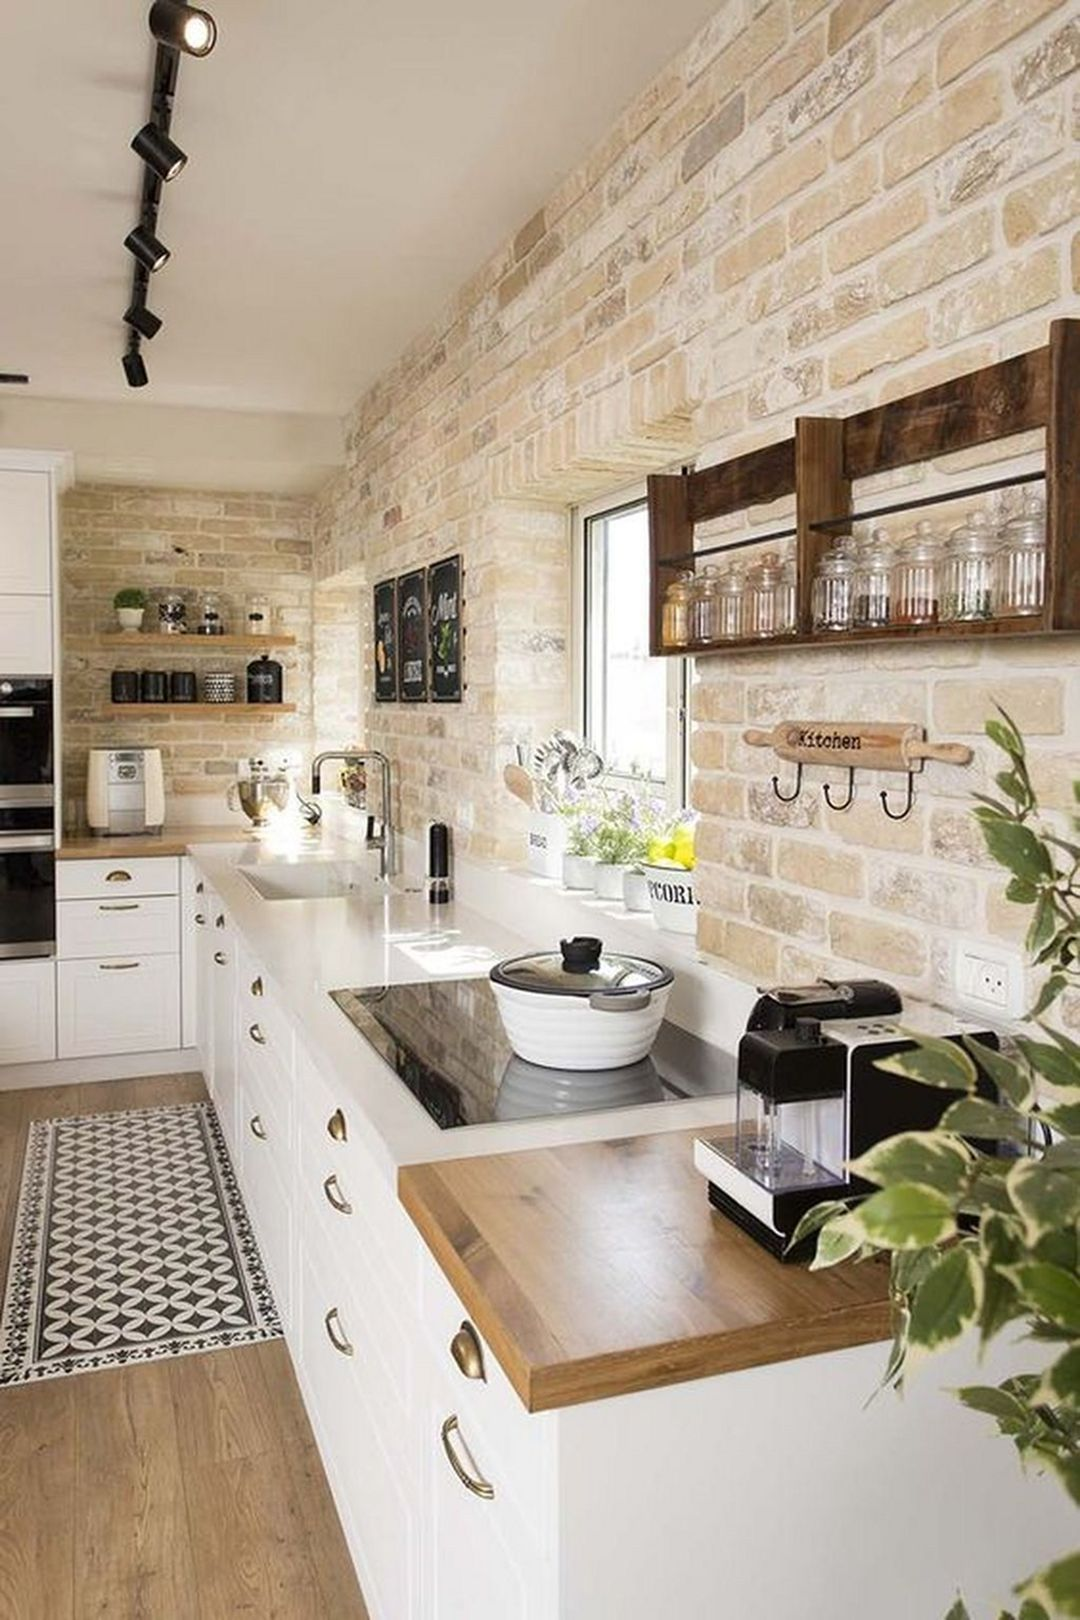 15 Chic Farmhouse Kitchen Design And Decorating Ideas For Fun